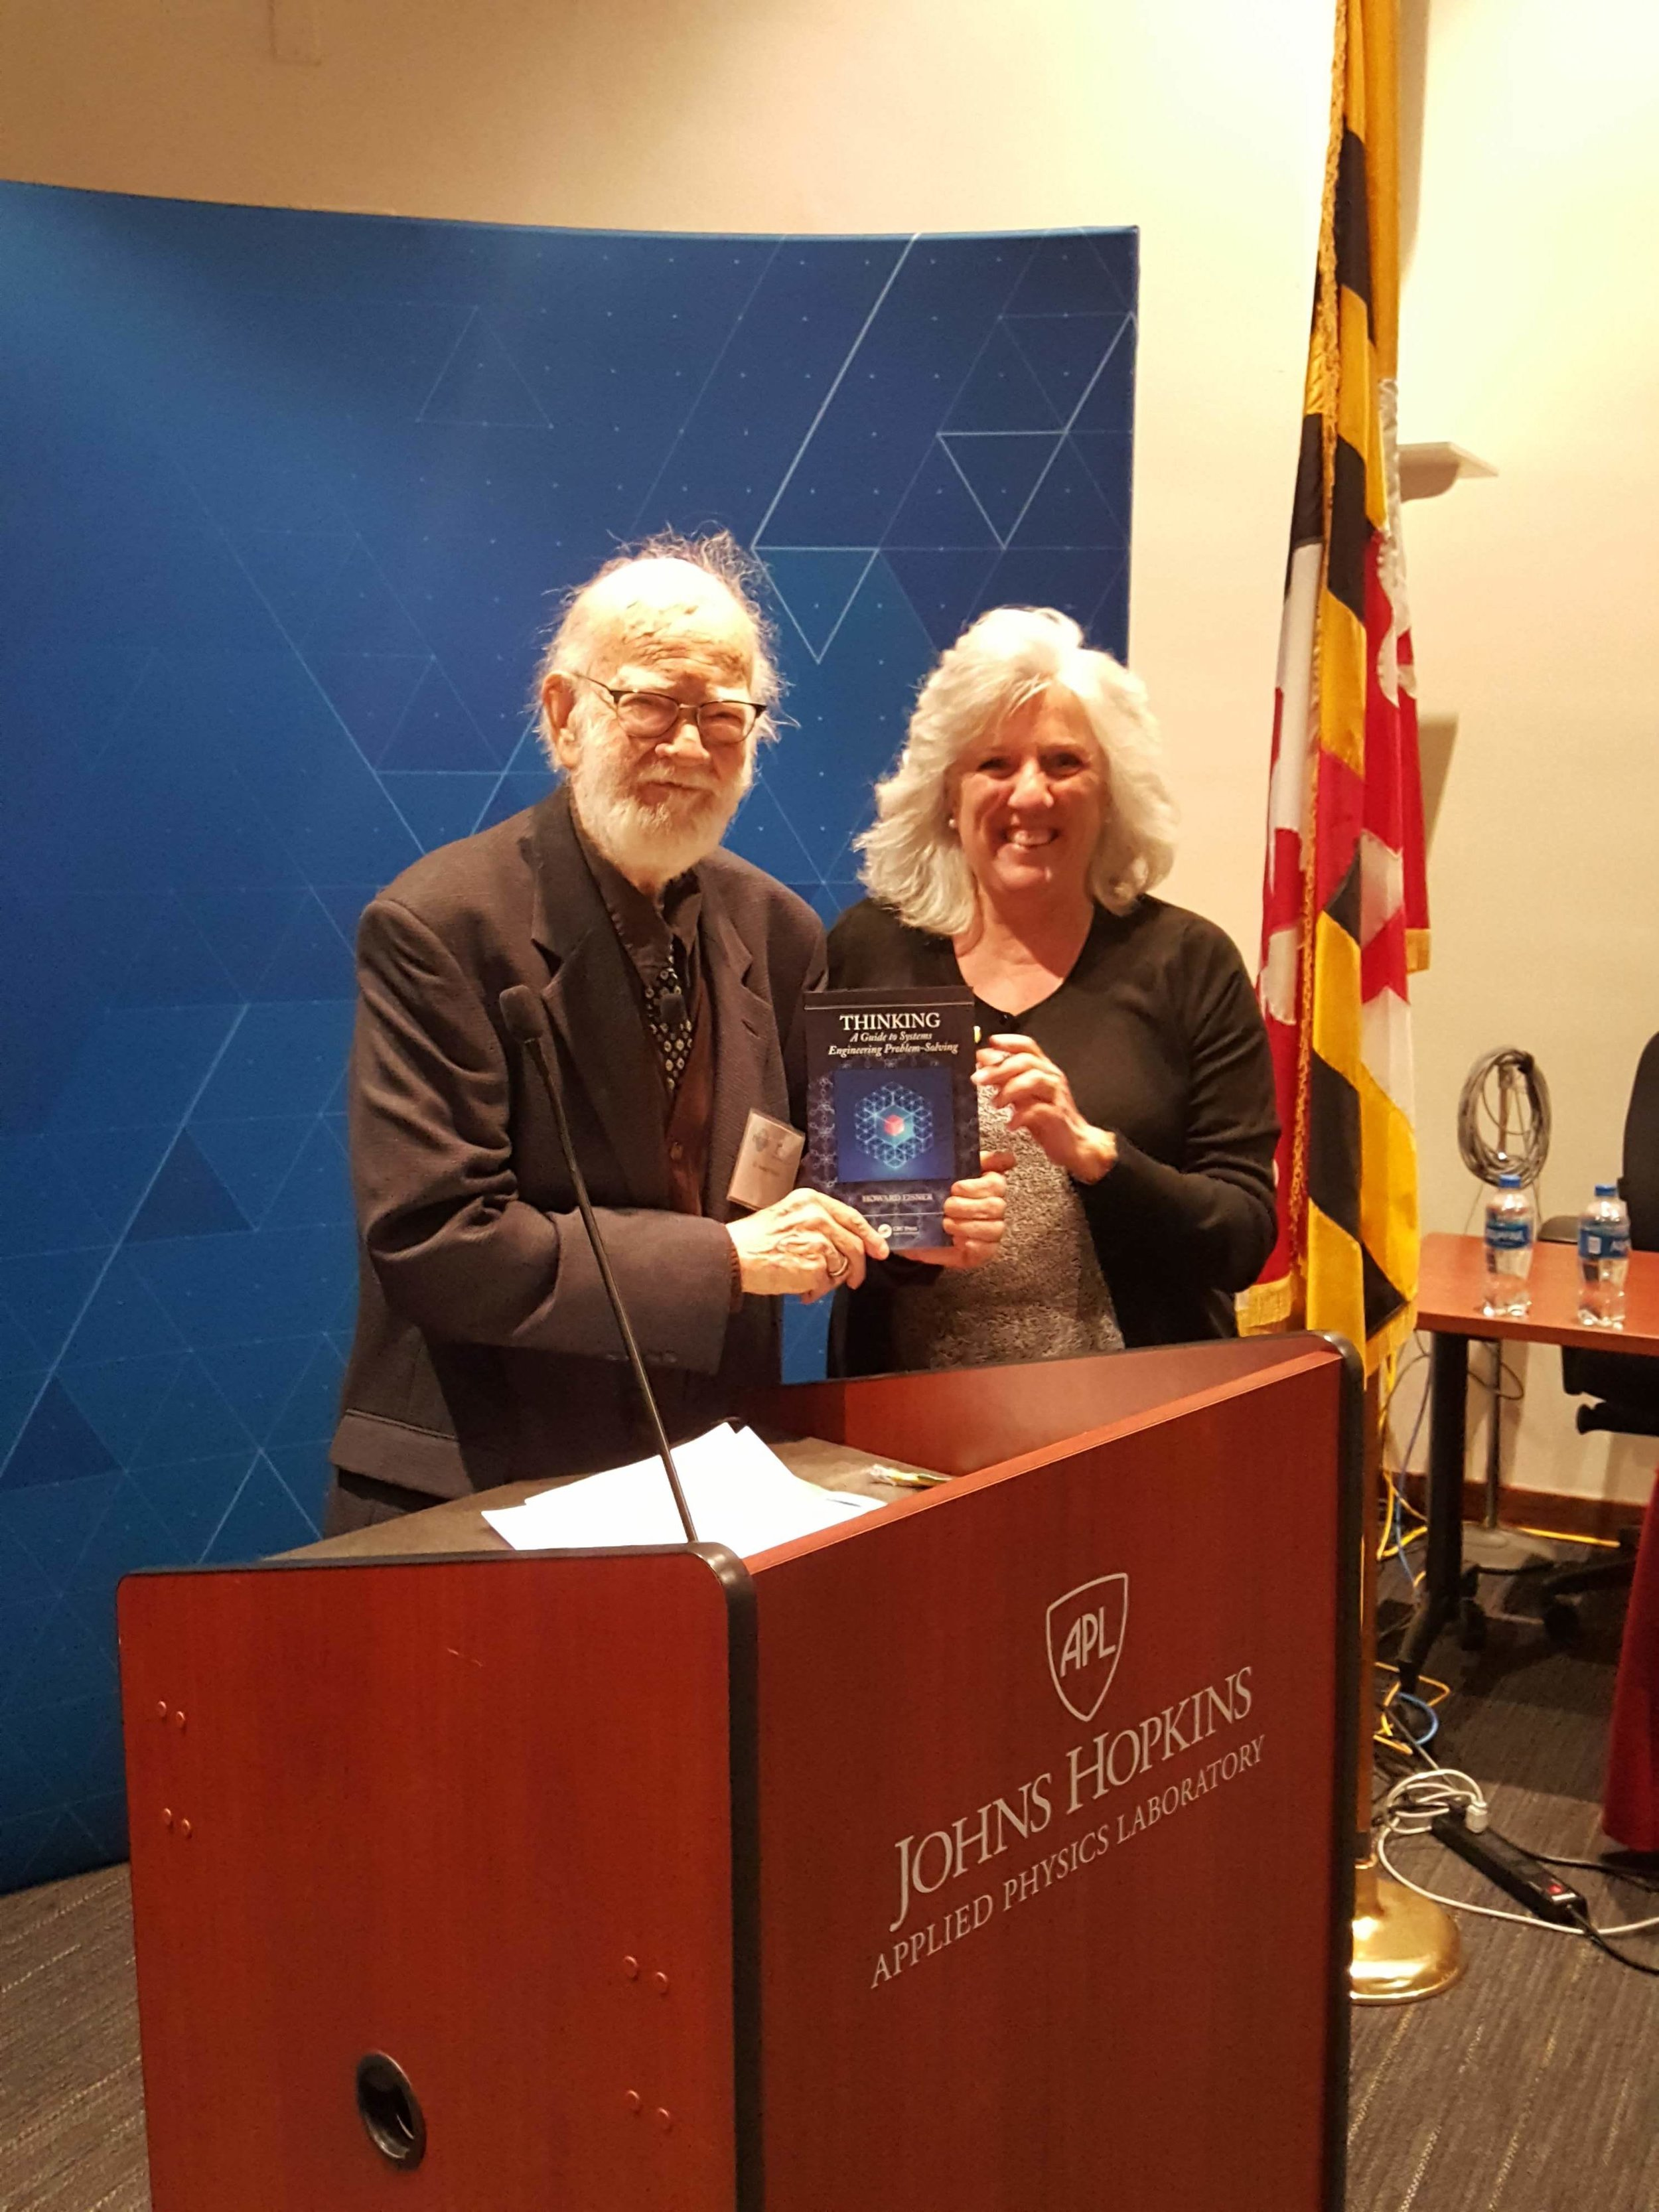 Ellie Gianni, ESEP, and Past Chapter President, won Dr. Eisner's new book:  Thinking: A Guide to Systems Engineering Problem-Solving.